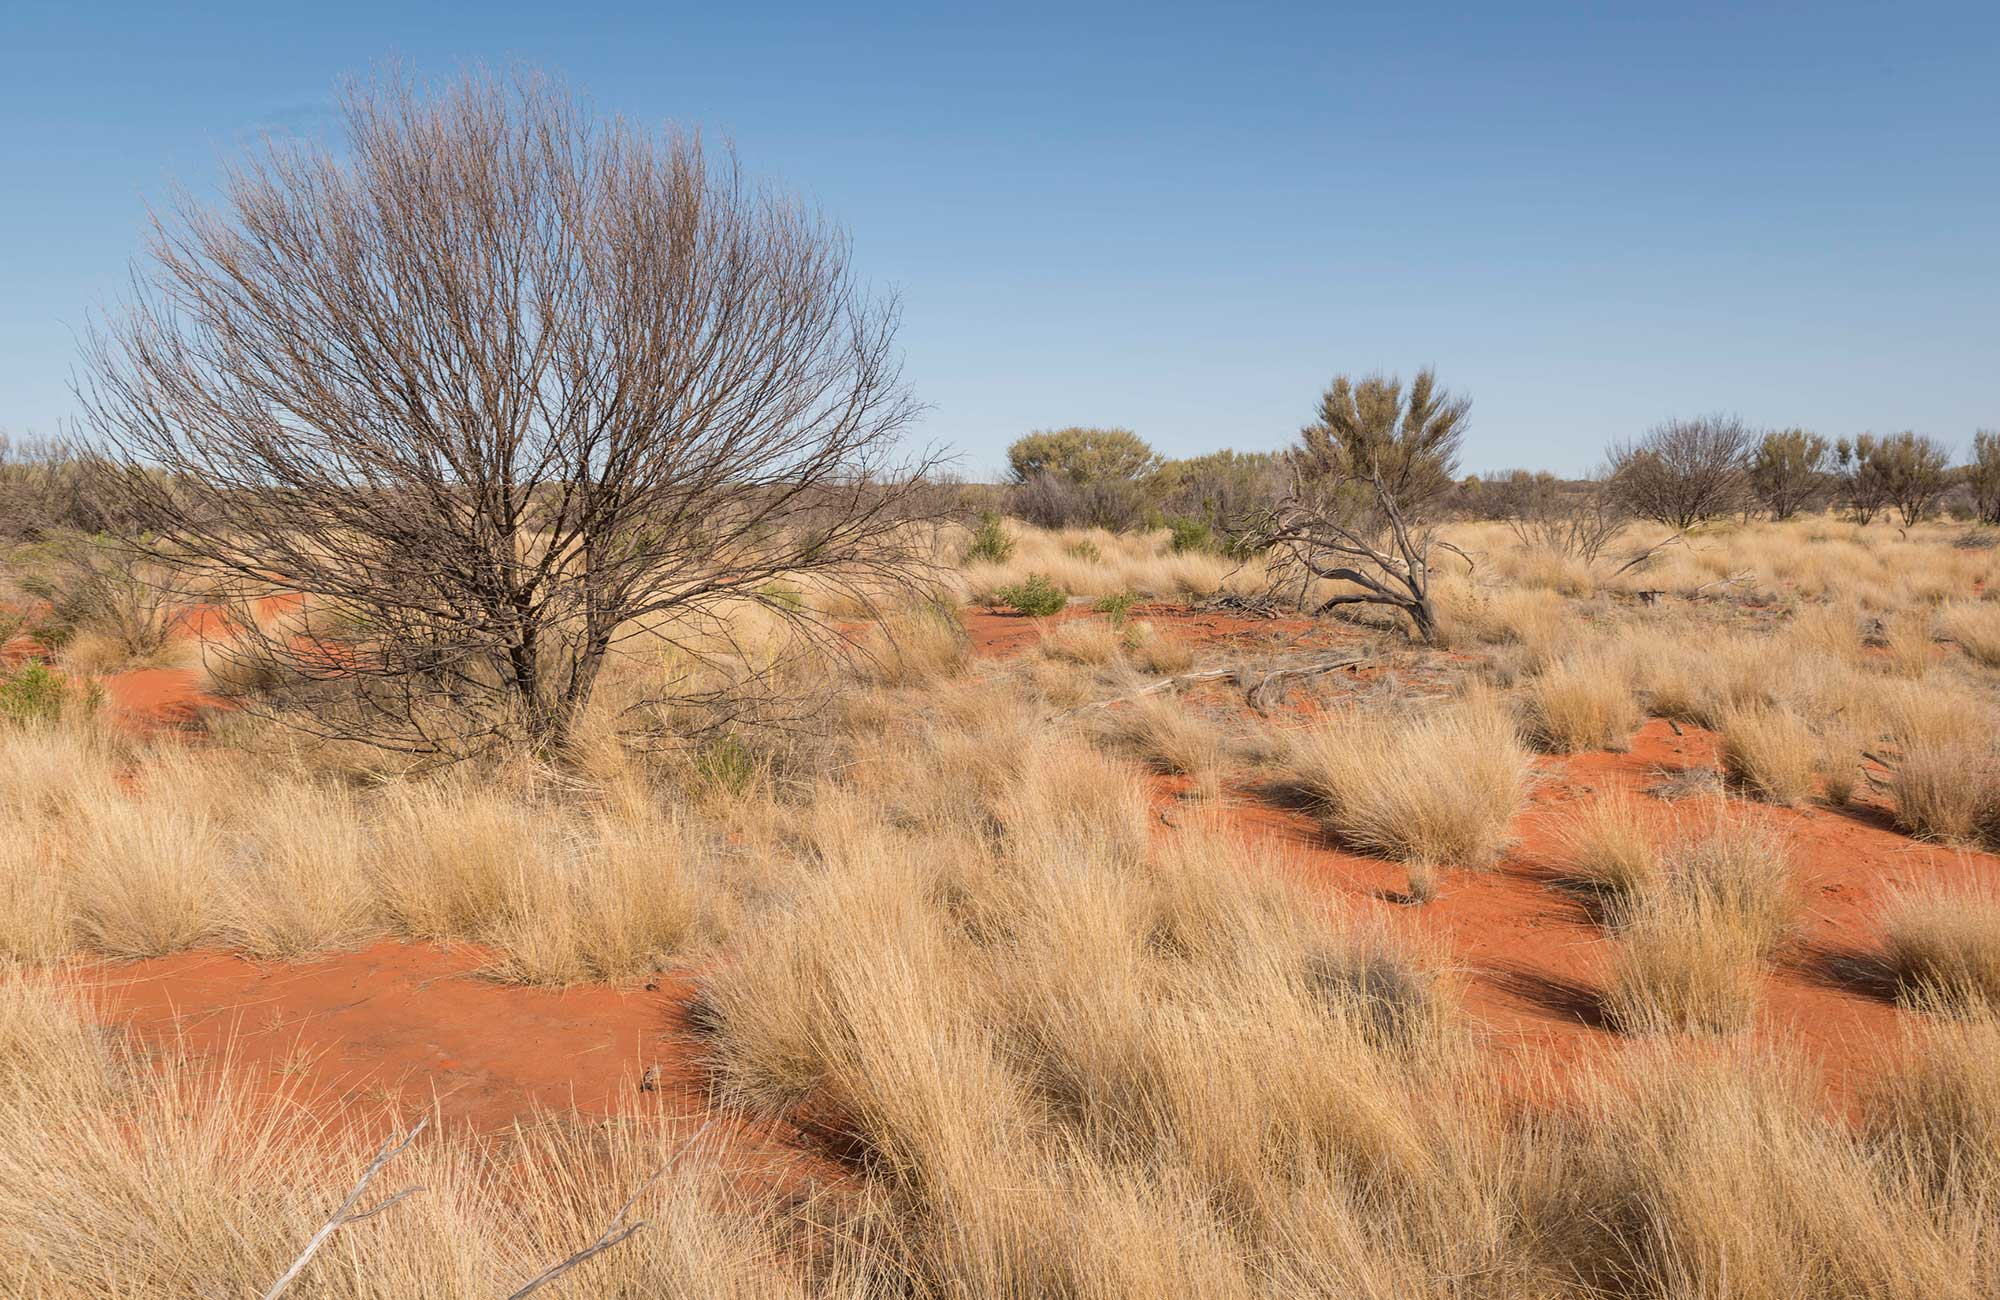 Desert shrubs and red earth in Sturt National Park. Photo: John Spencer/DPIE